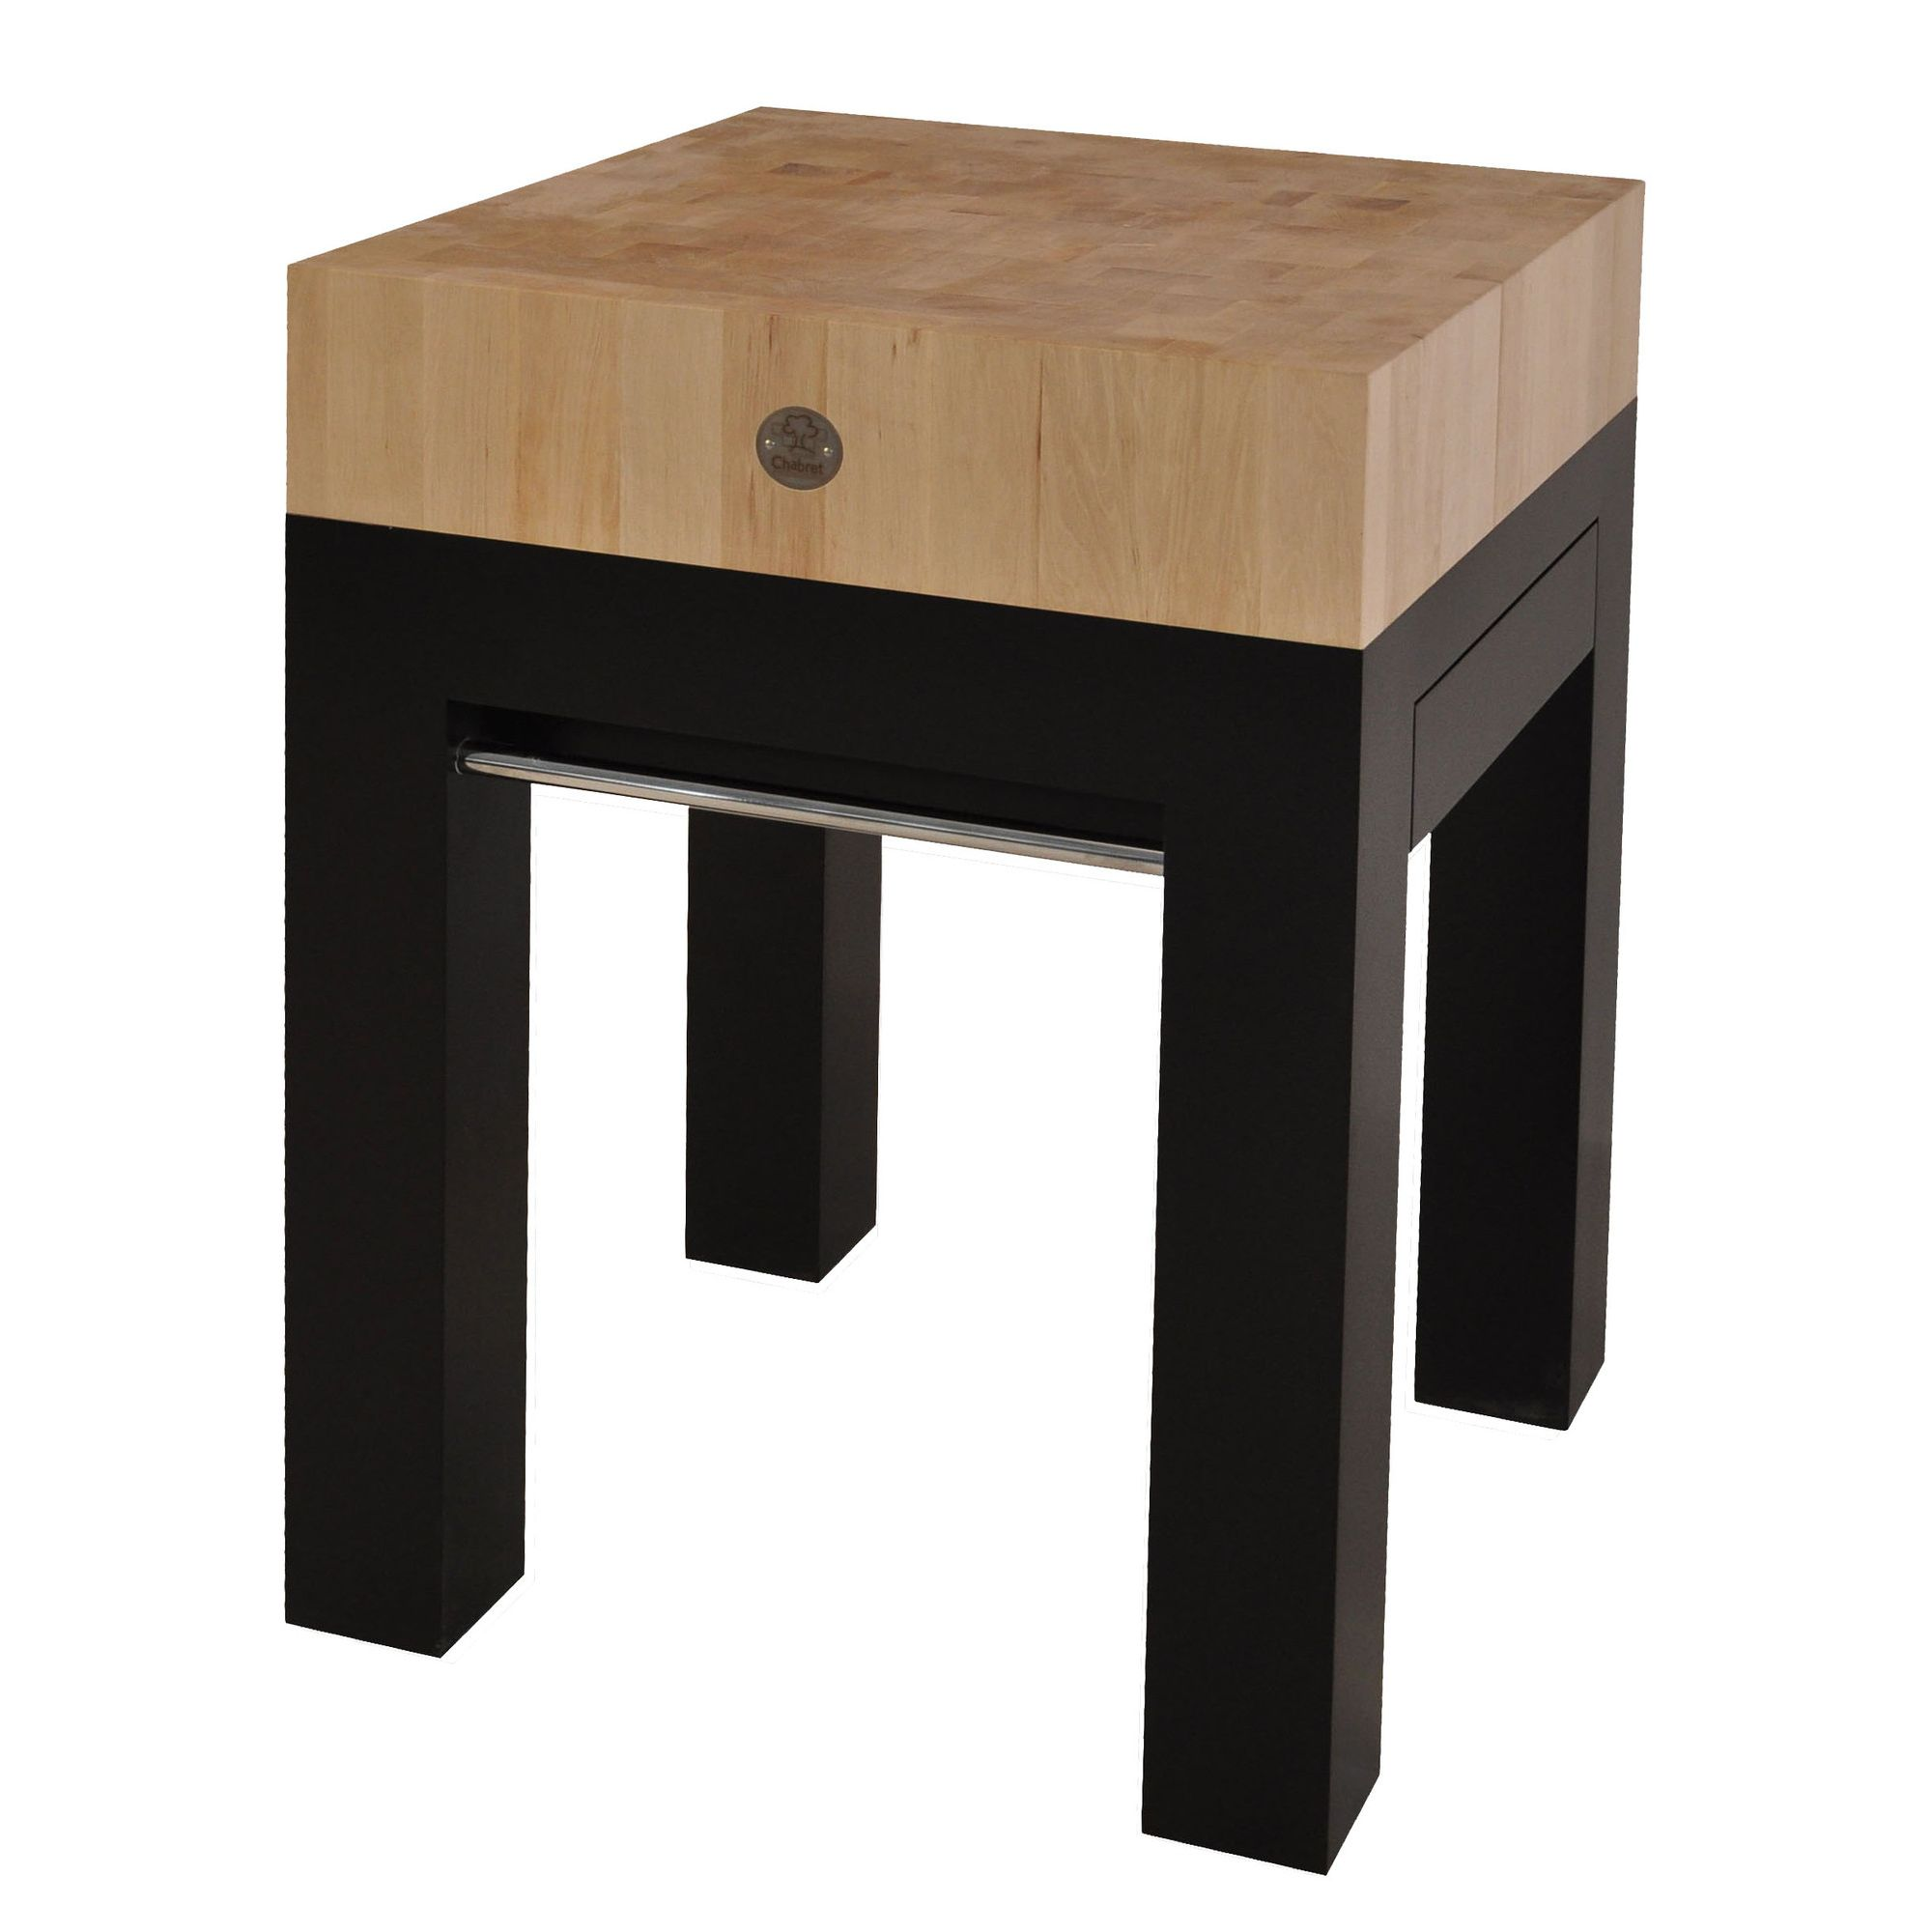 Chabret Butcher's Block by MC Berger - 90cm X 70cm X 50cm at Tescos Direct